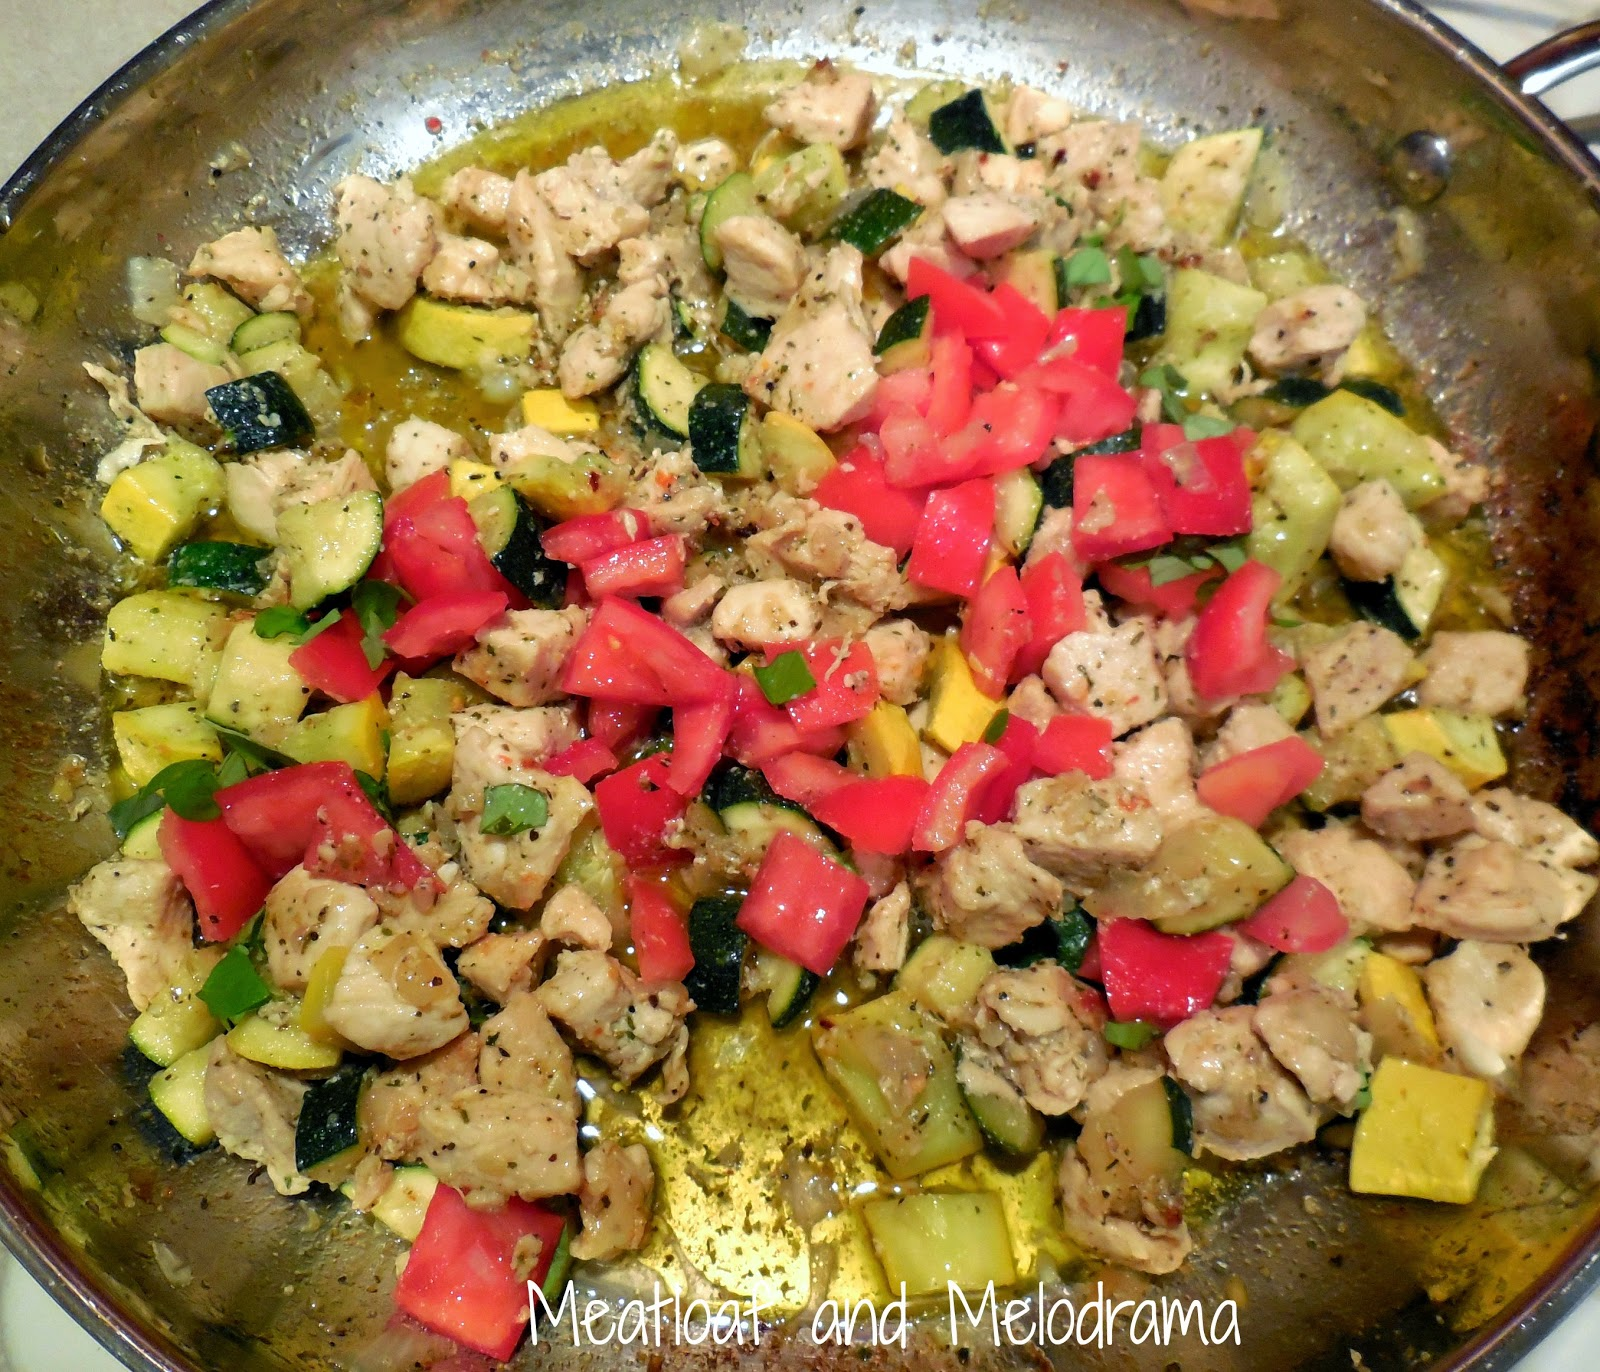 sauteed chicken in pan with zucchini, summer squash and tomatoes